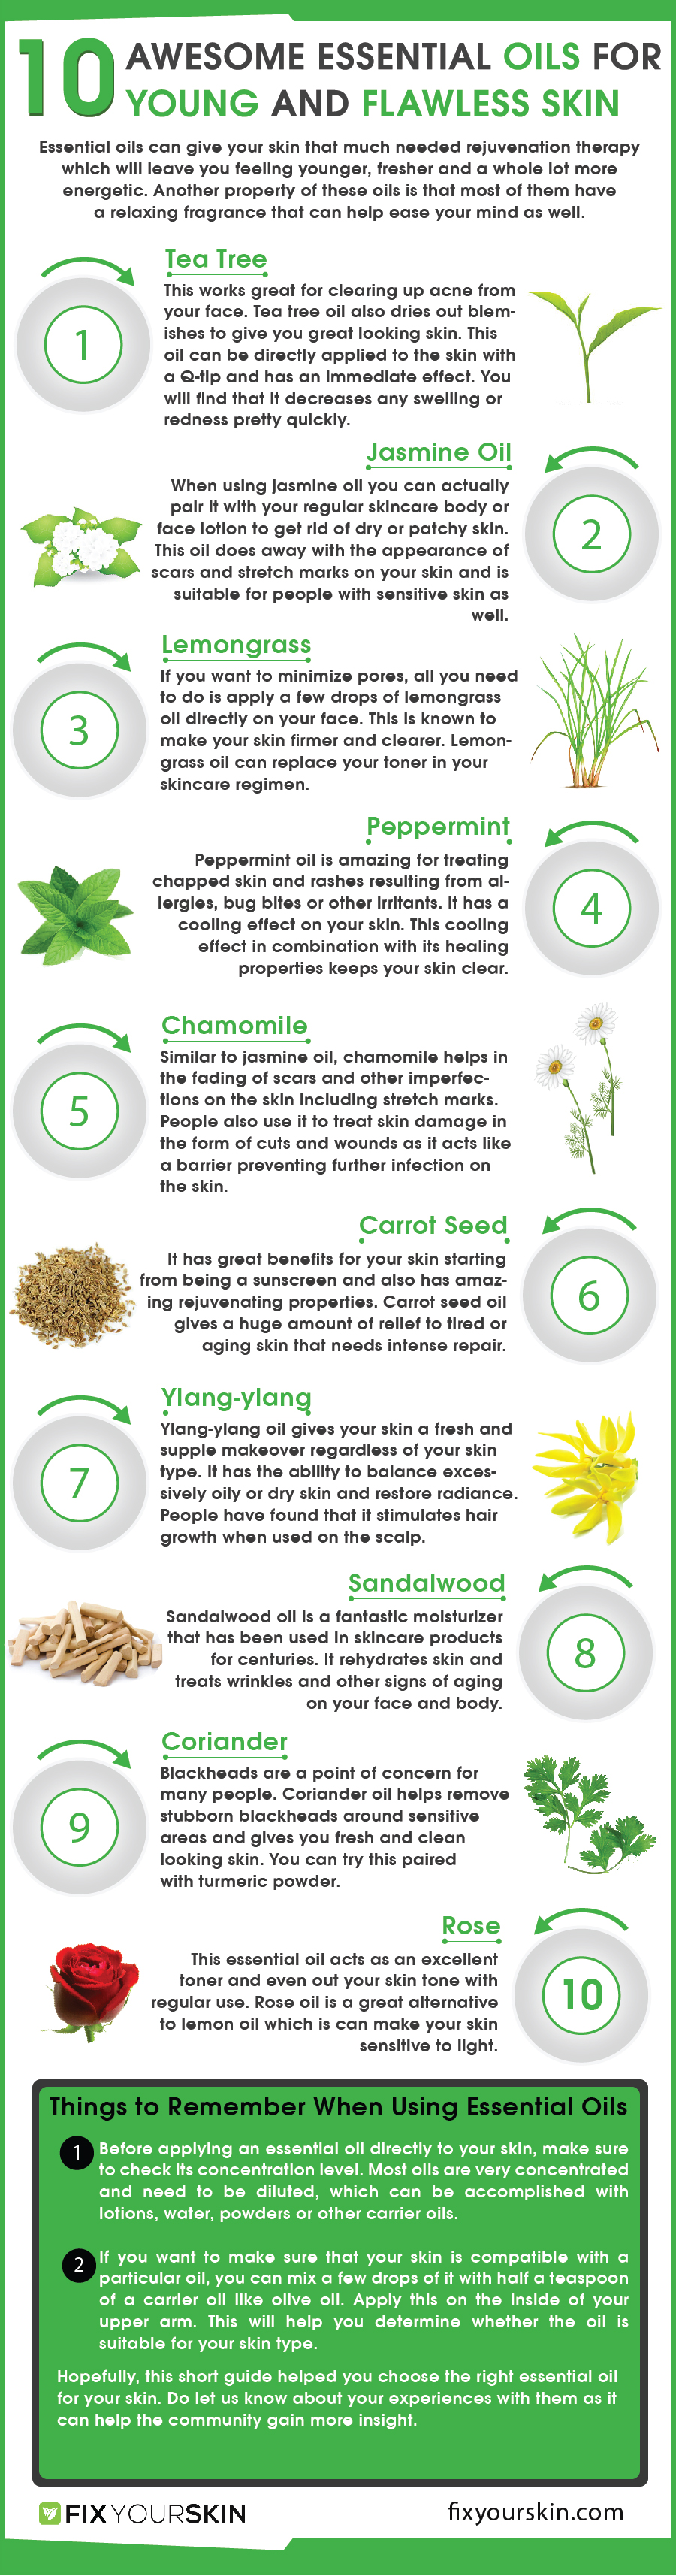 10 Best Essential Oils For Flawless Skin